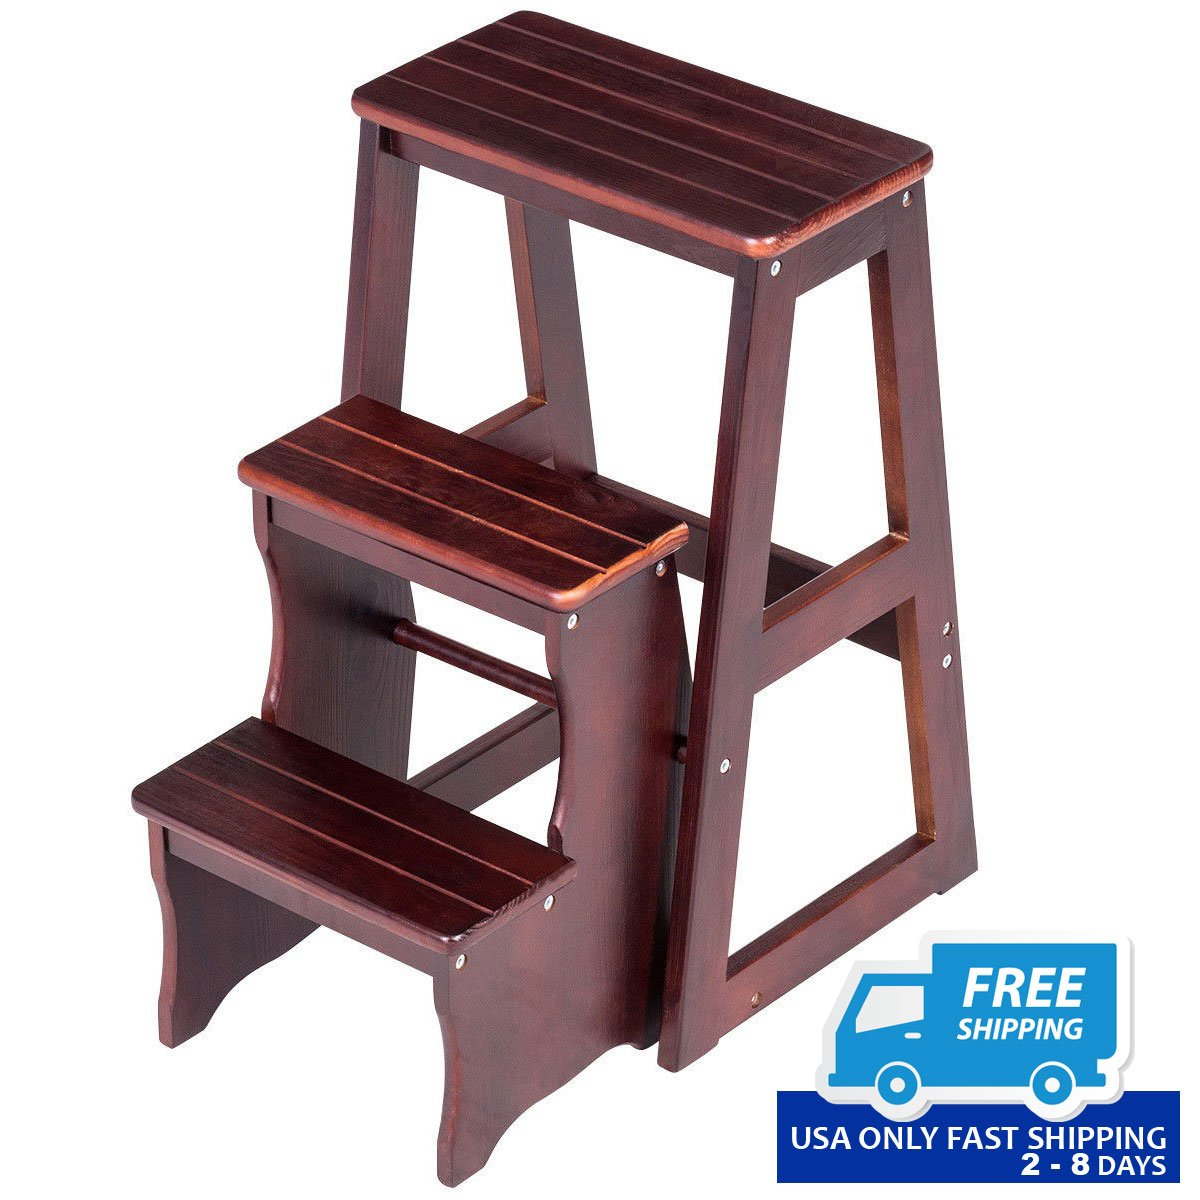 3 tier folding wood step ladder stool bench by choice products. Black Bedroom Furniture Sets. Home Design Ideas